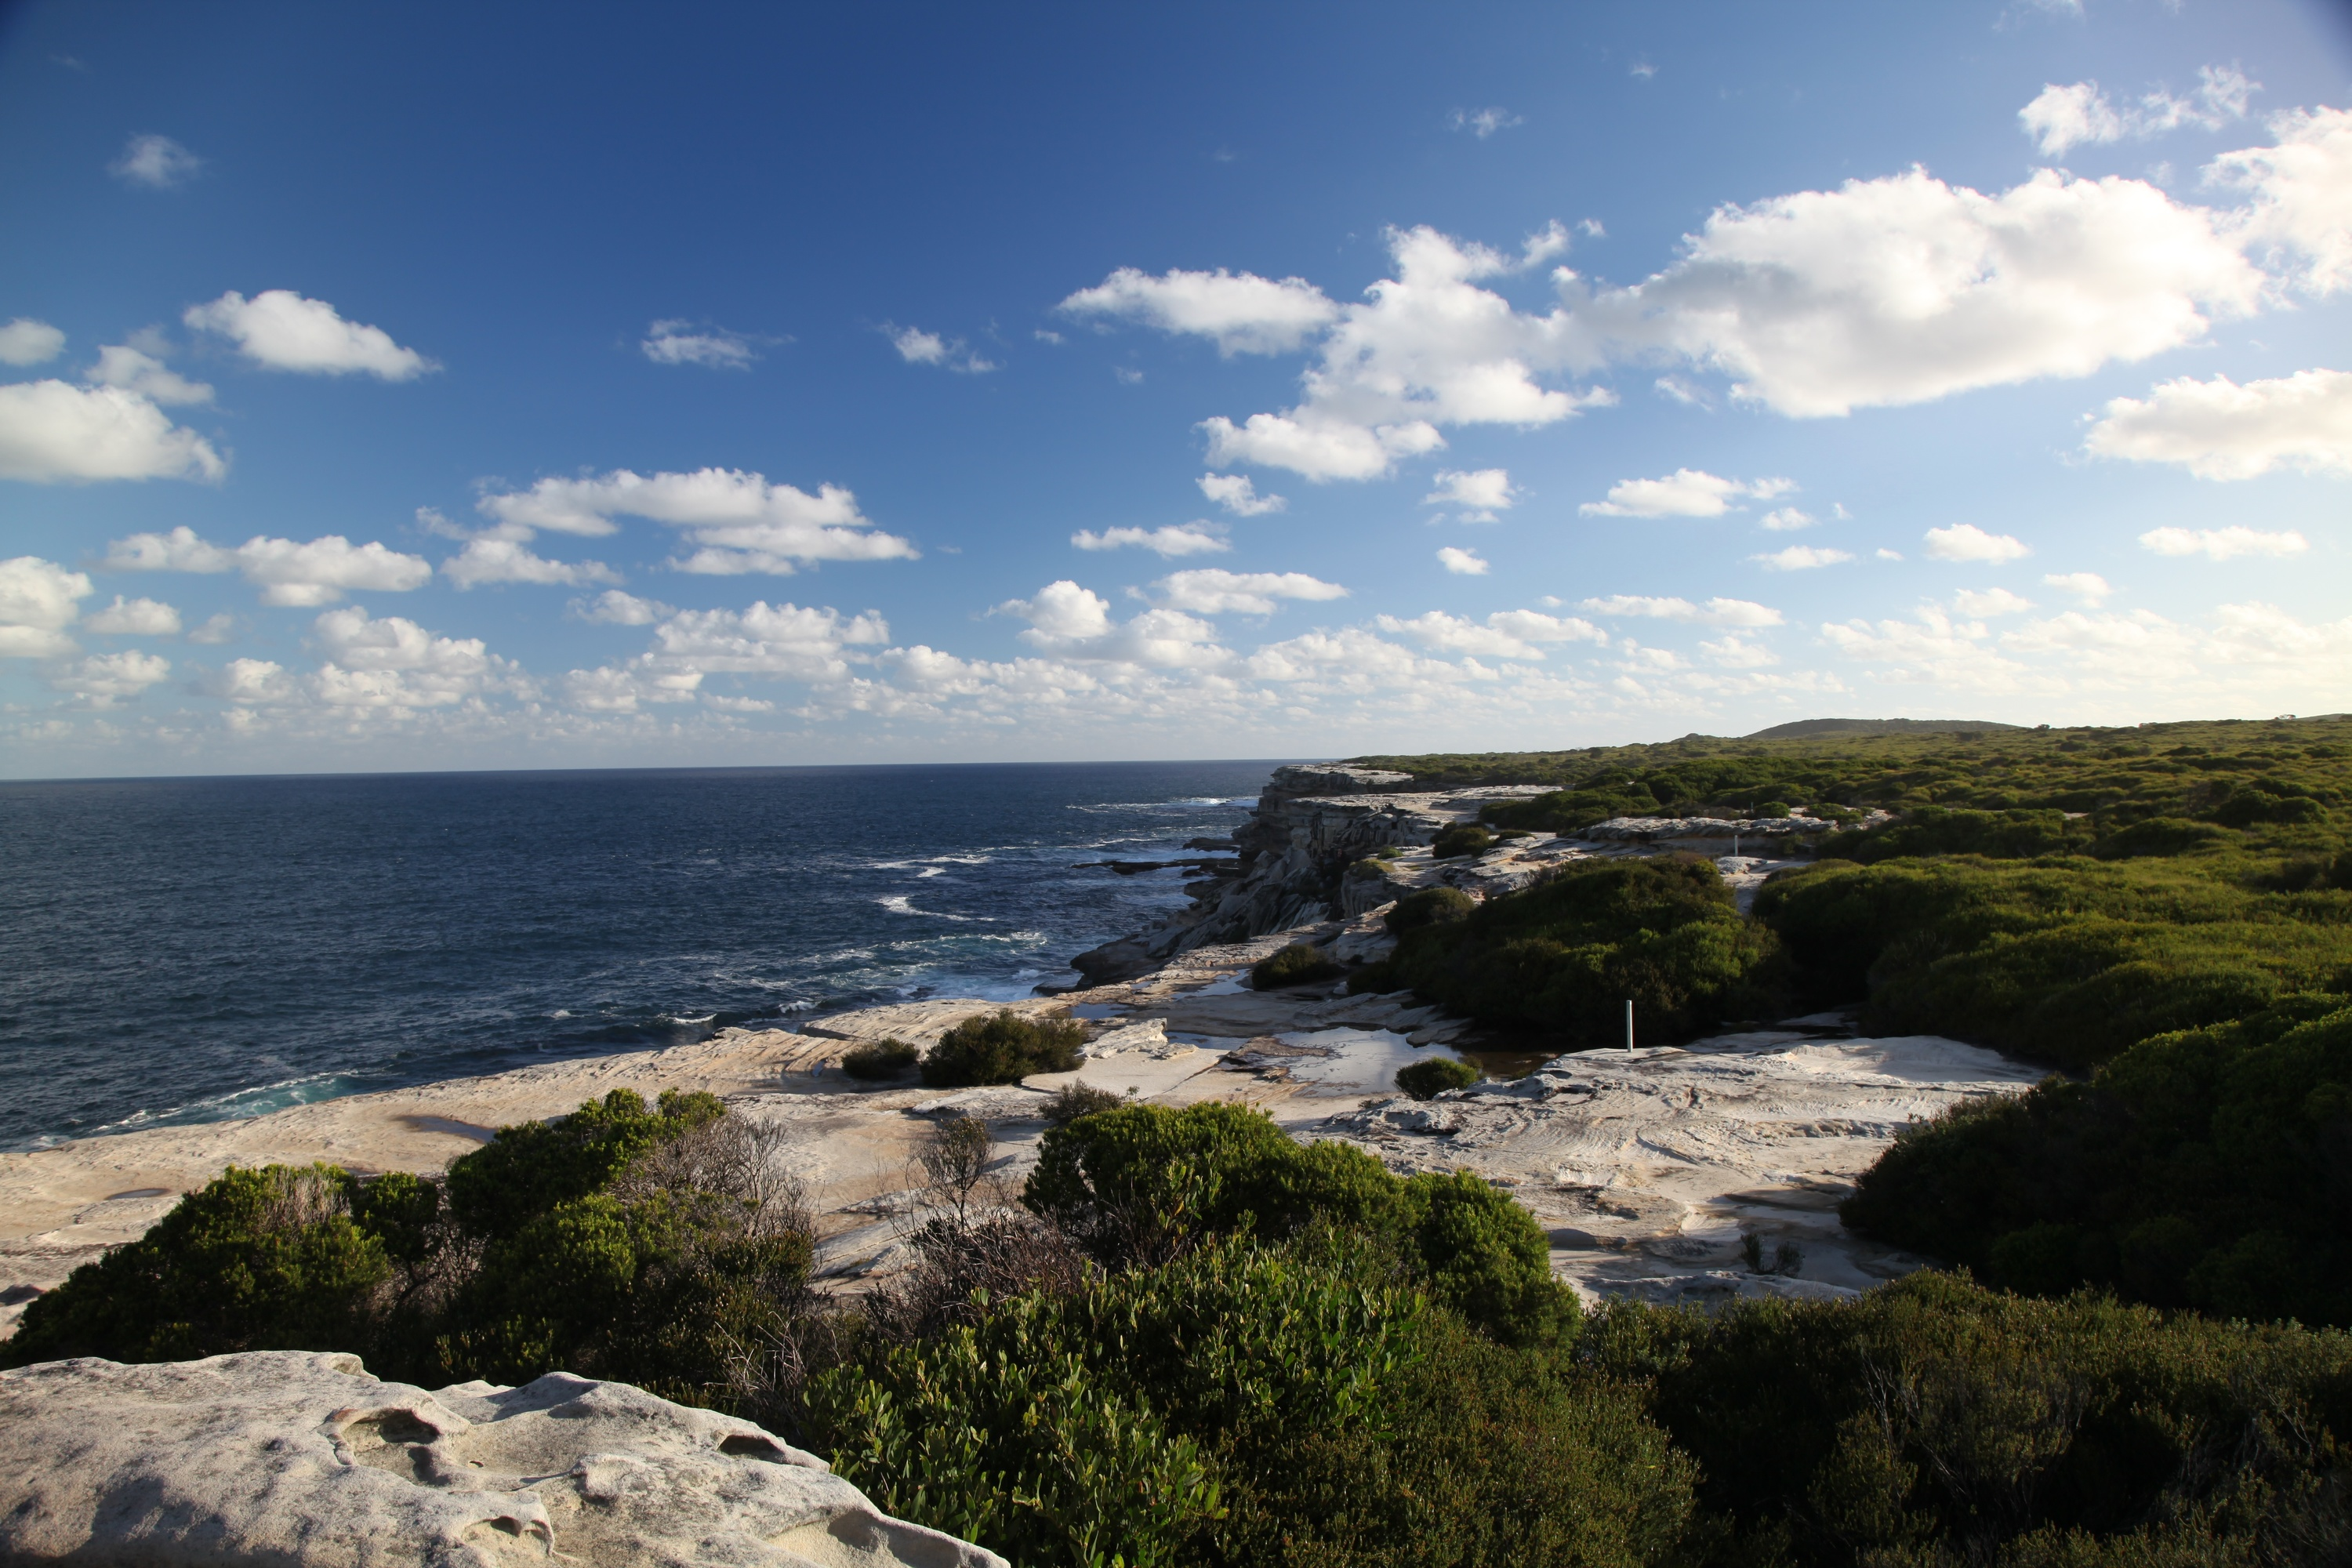 Spectacular coastal view of prime whale watching location at Cape Solander, Kurnell, in Kamay Botany Bay National Park.